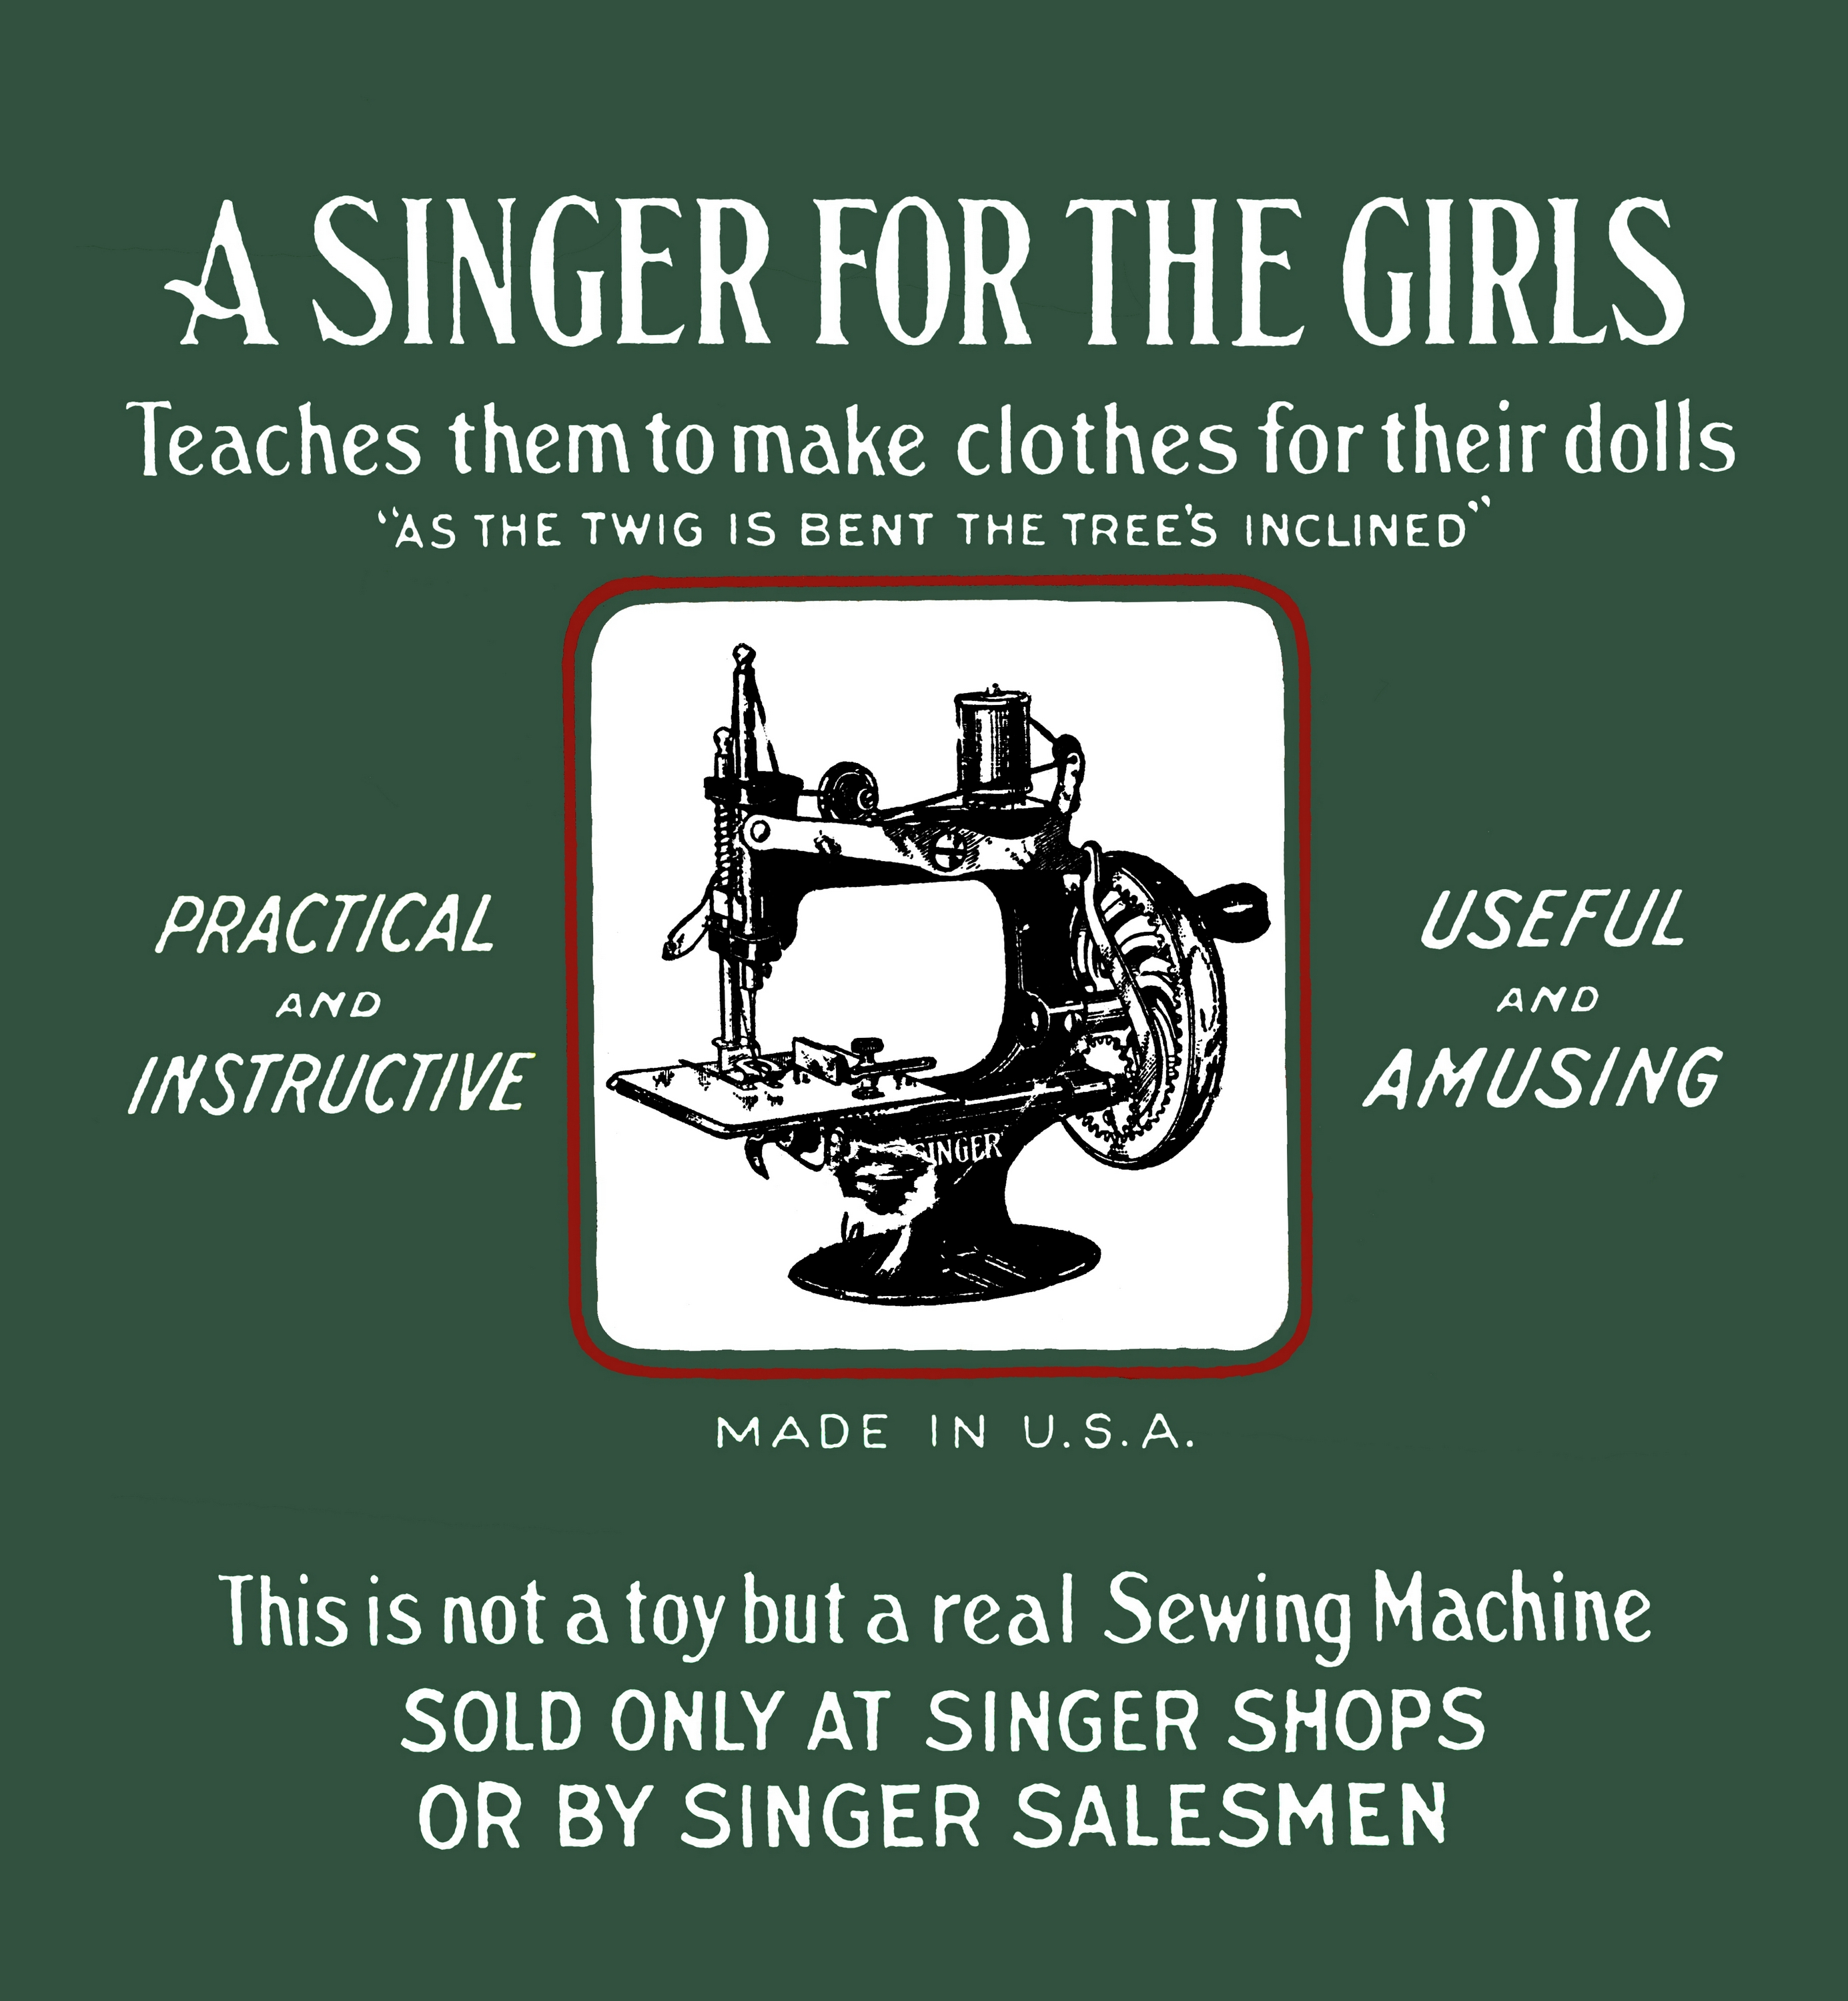 Singer Model 20 Sewing Machine The Brighton Toy And Index Parts Diagram Threading A For Girls Teaches Them To Make Clothes Their